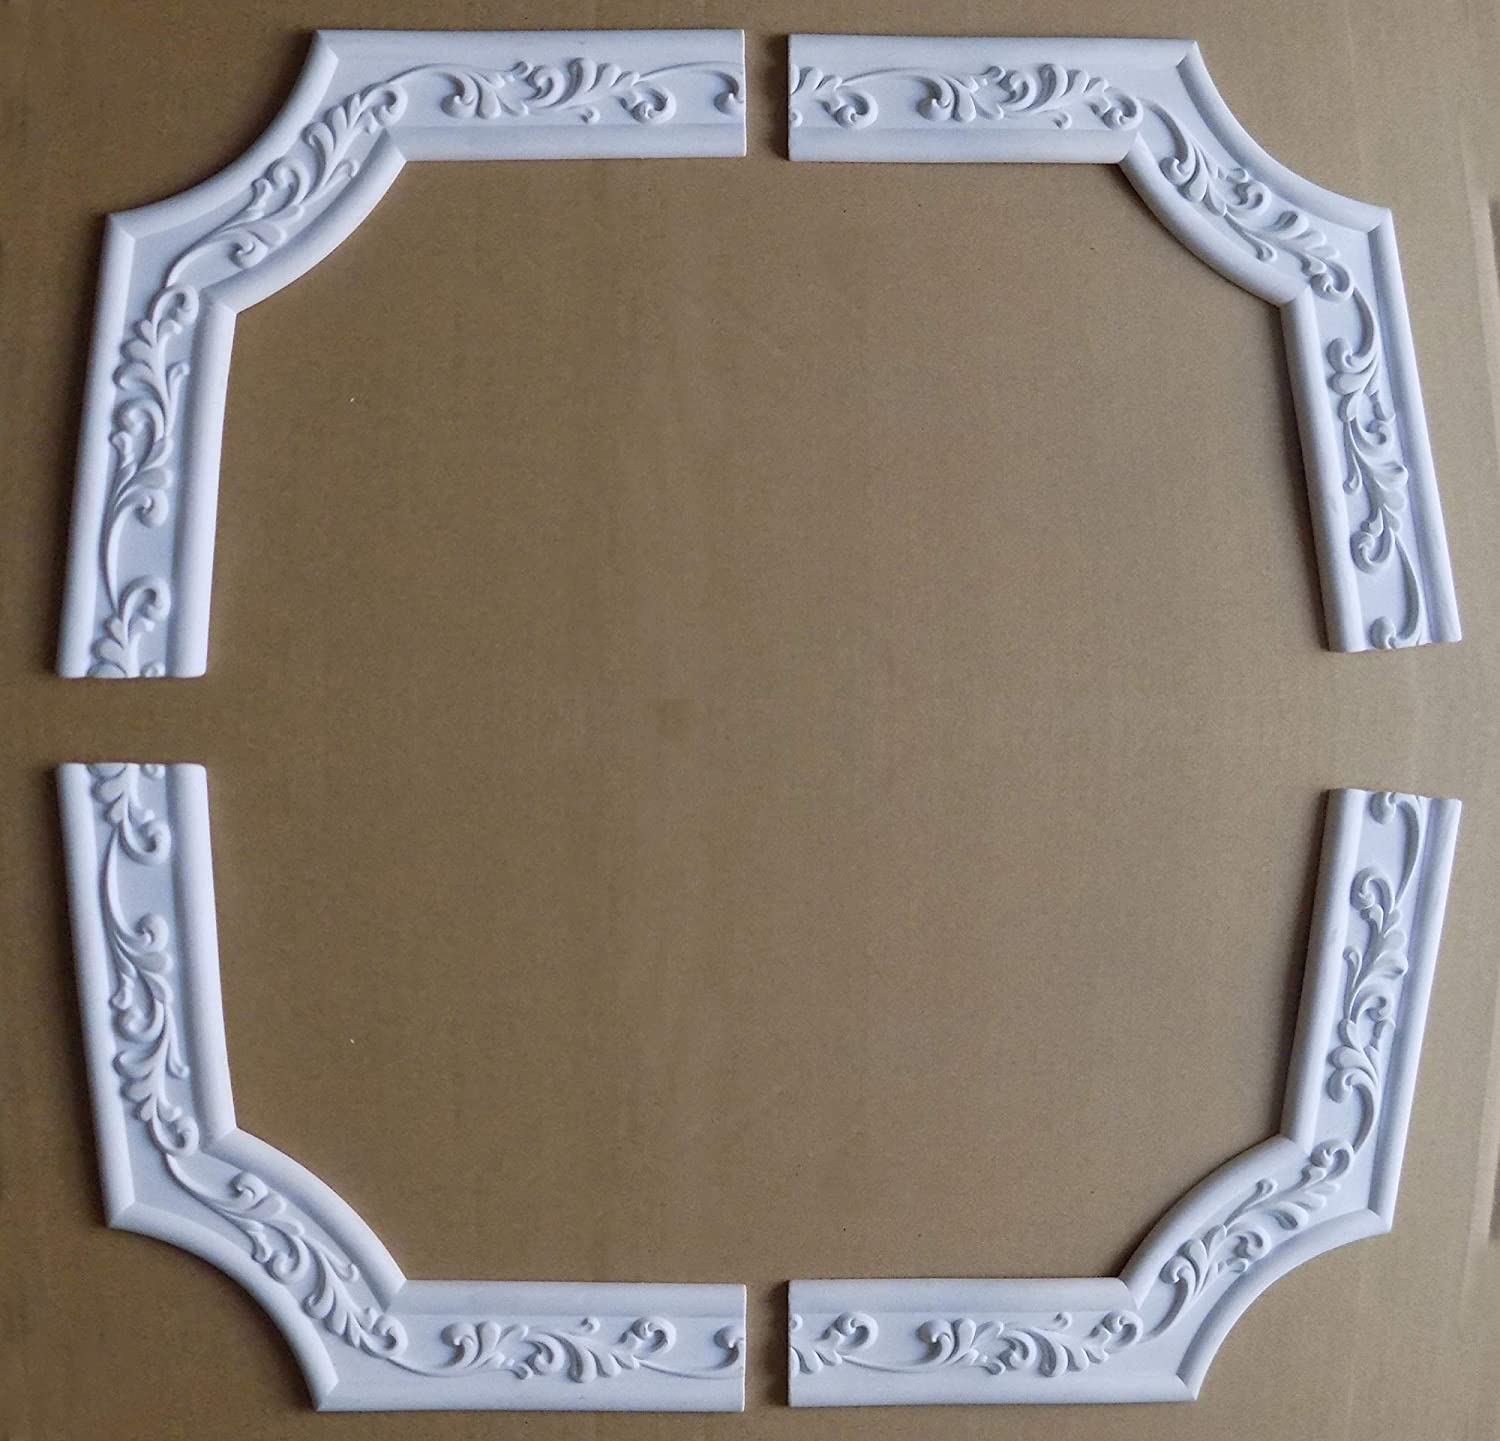 4 Focal Corner 8.4 Home Wall Door Focal Point Corner Flexible Molding Ceiling Trim Rope Waist Mouldings Width 1.8 inch//Thickness 0.31 inch